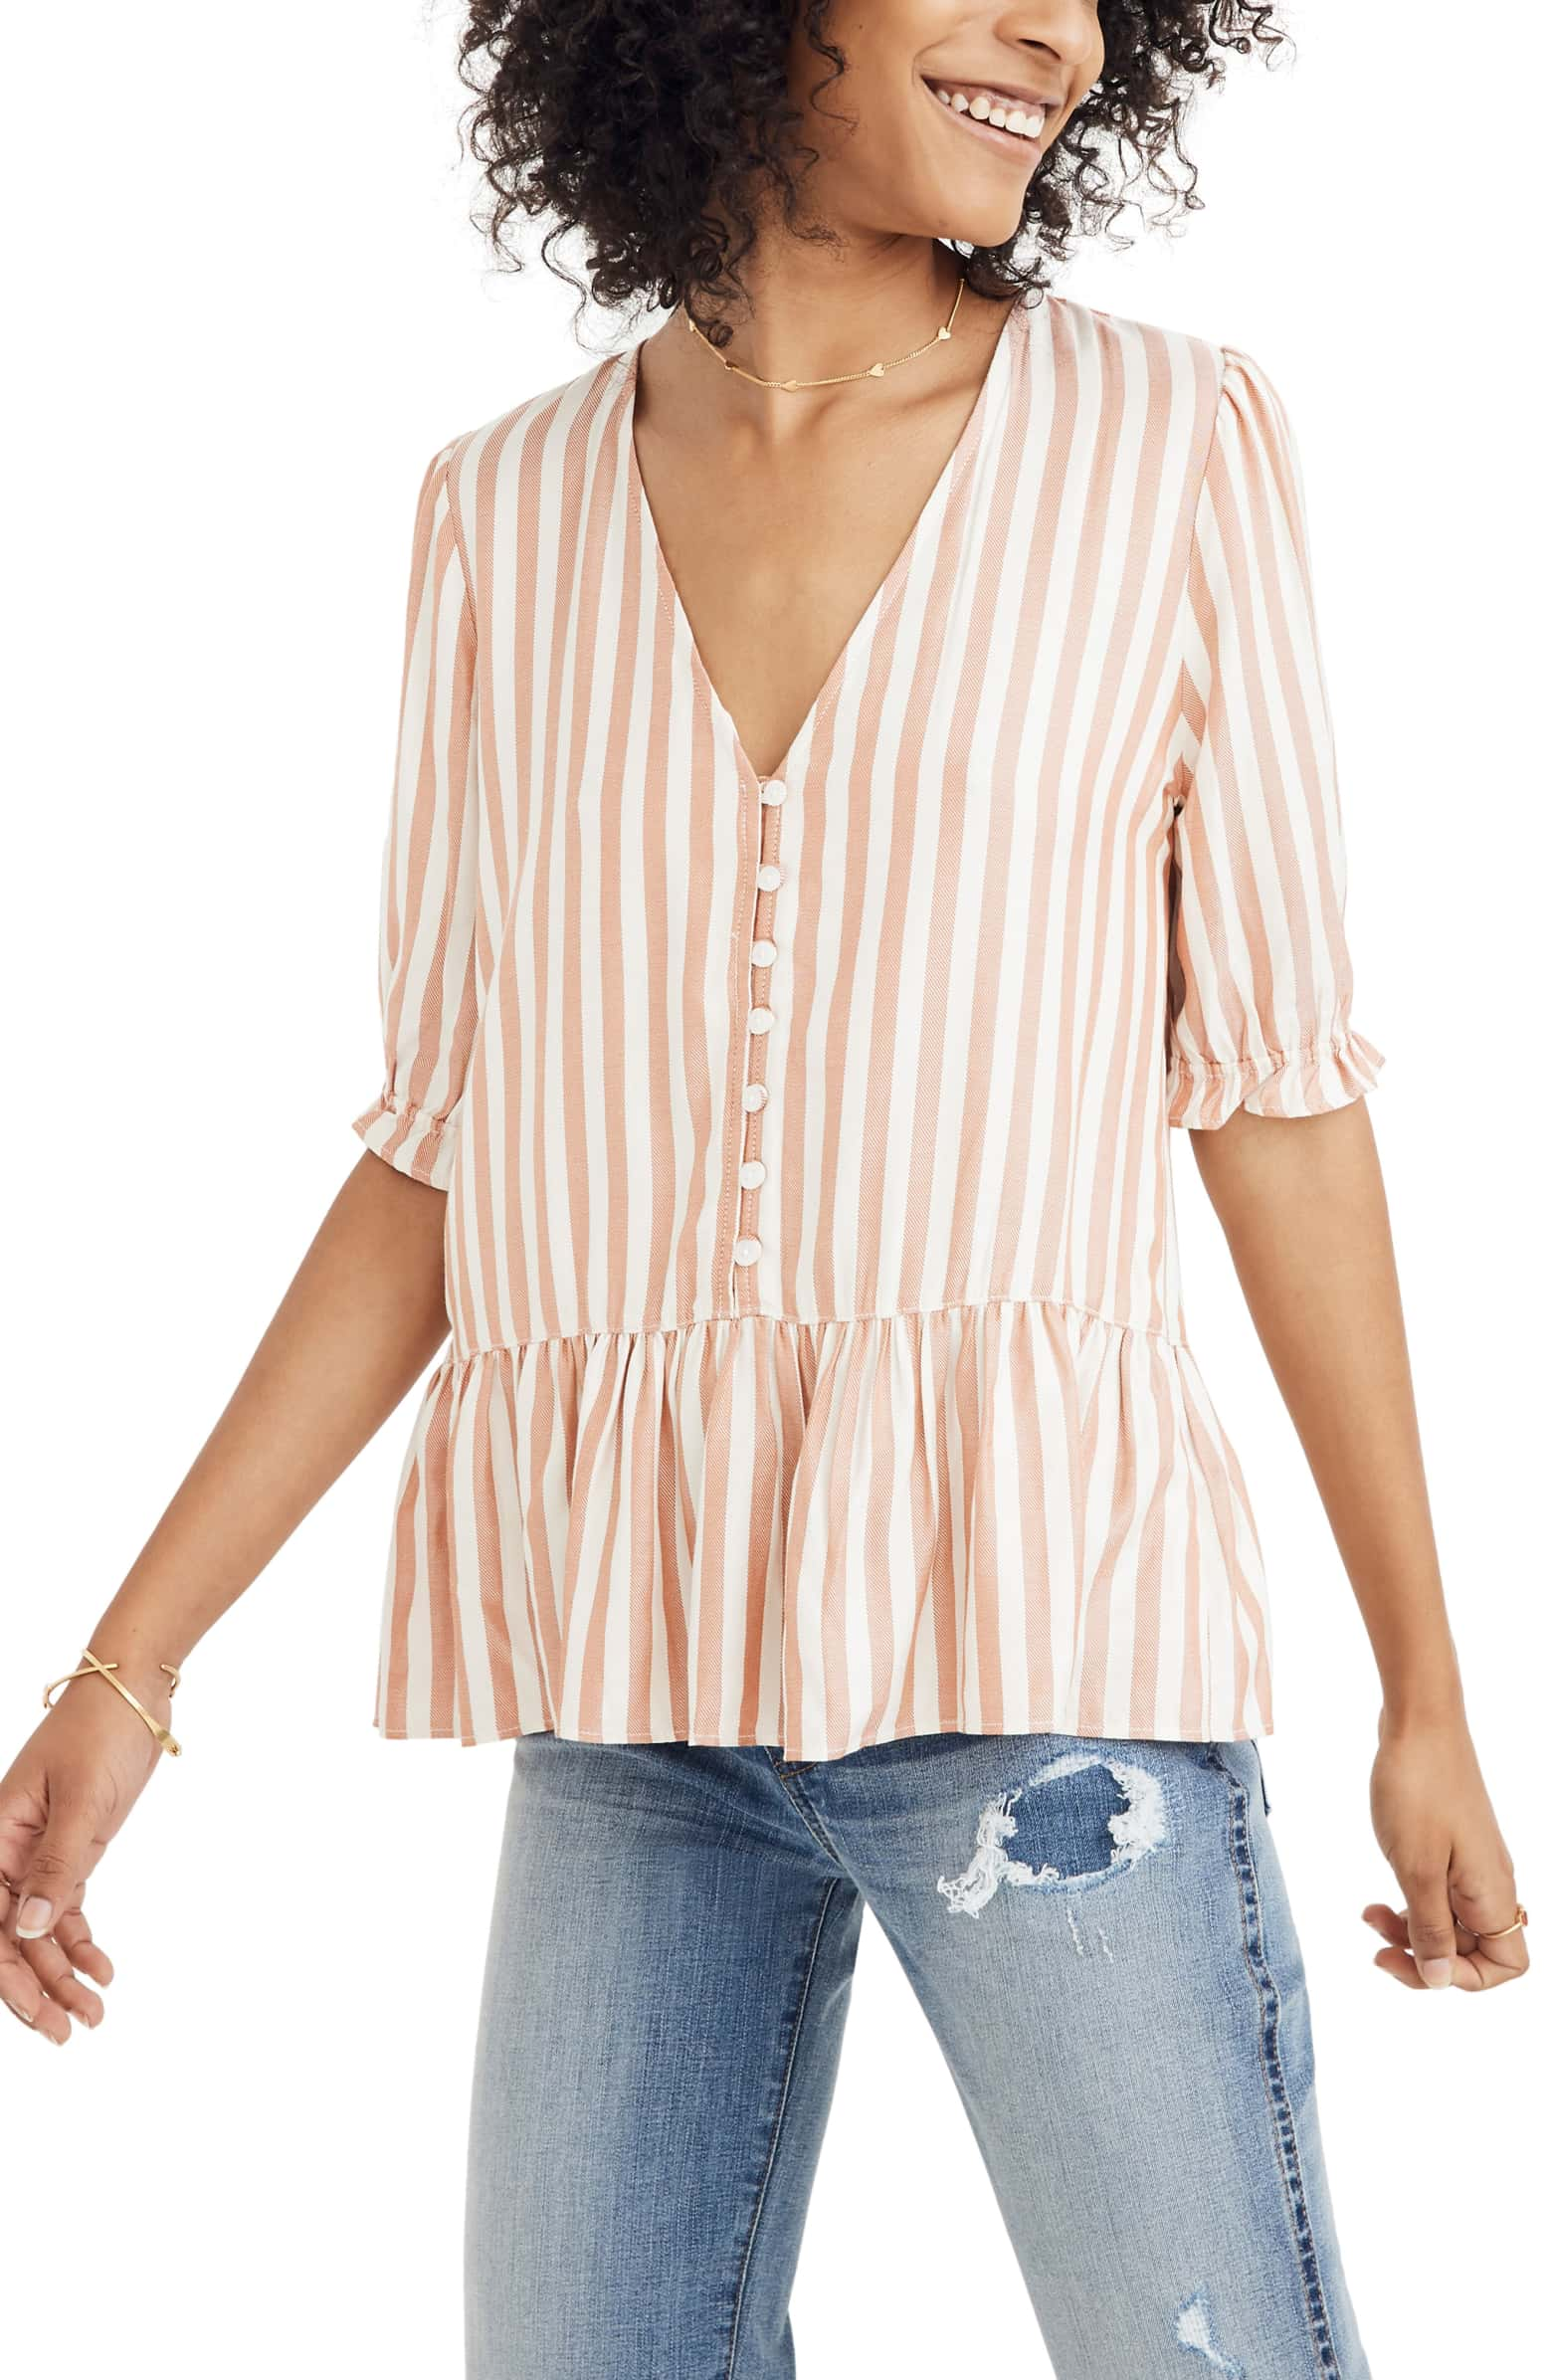 madewell striped shirt.jpg